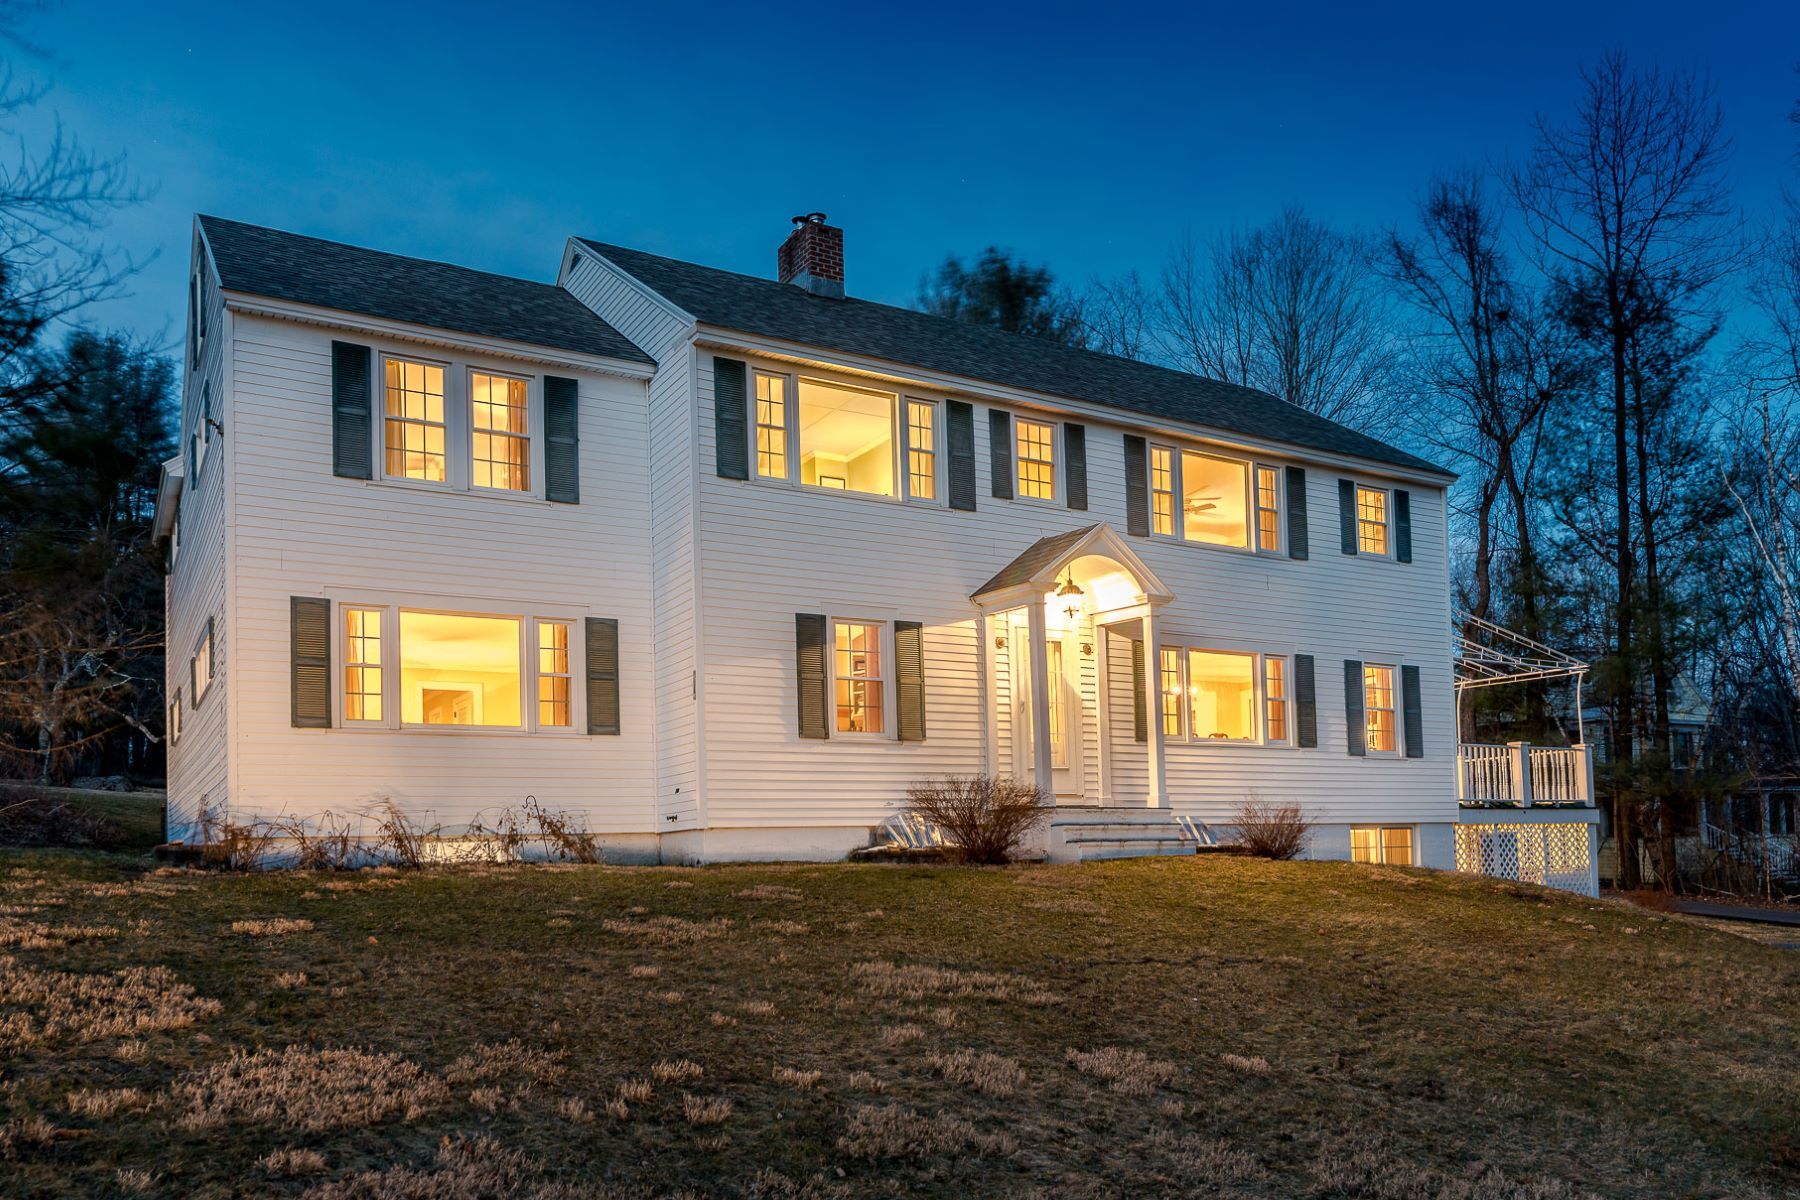 Moradia para Venda às Charming Renovated Village Colonial 170 Ways Ln Manchester, Vermont, 05254 Estados Unidos